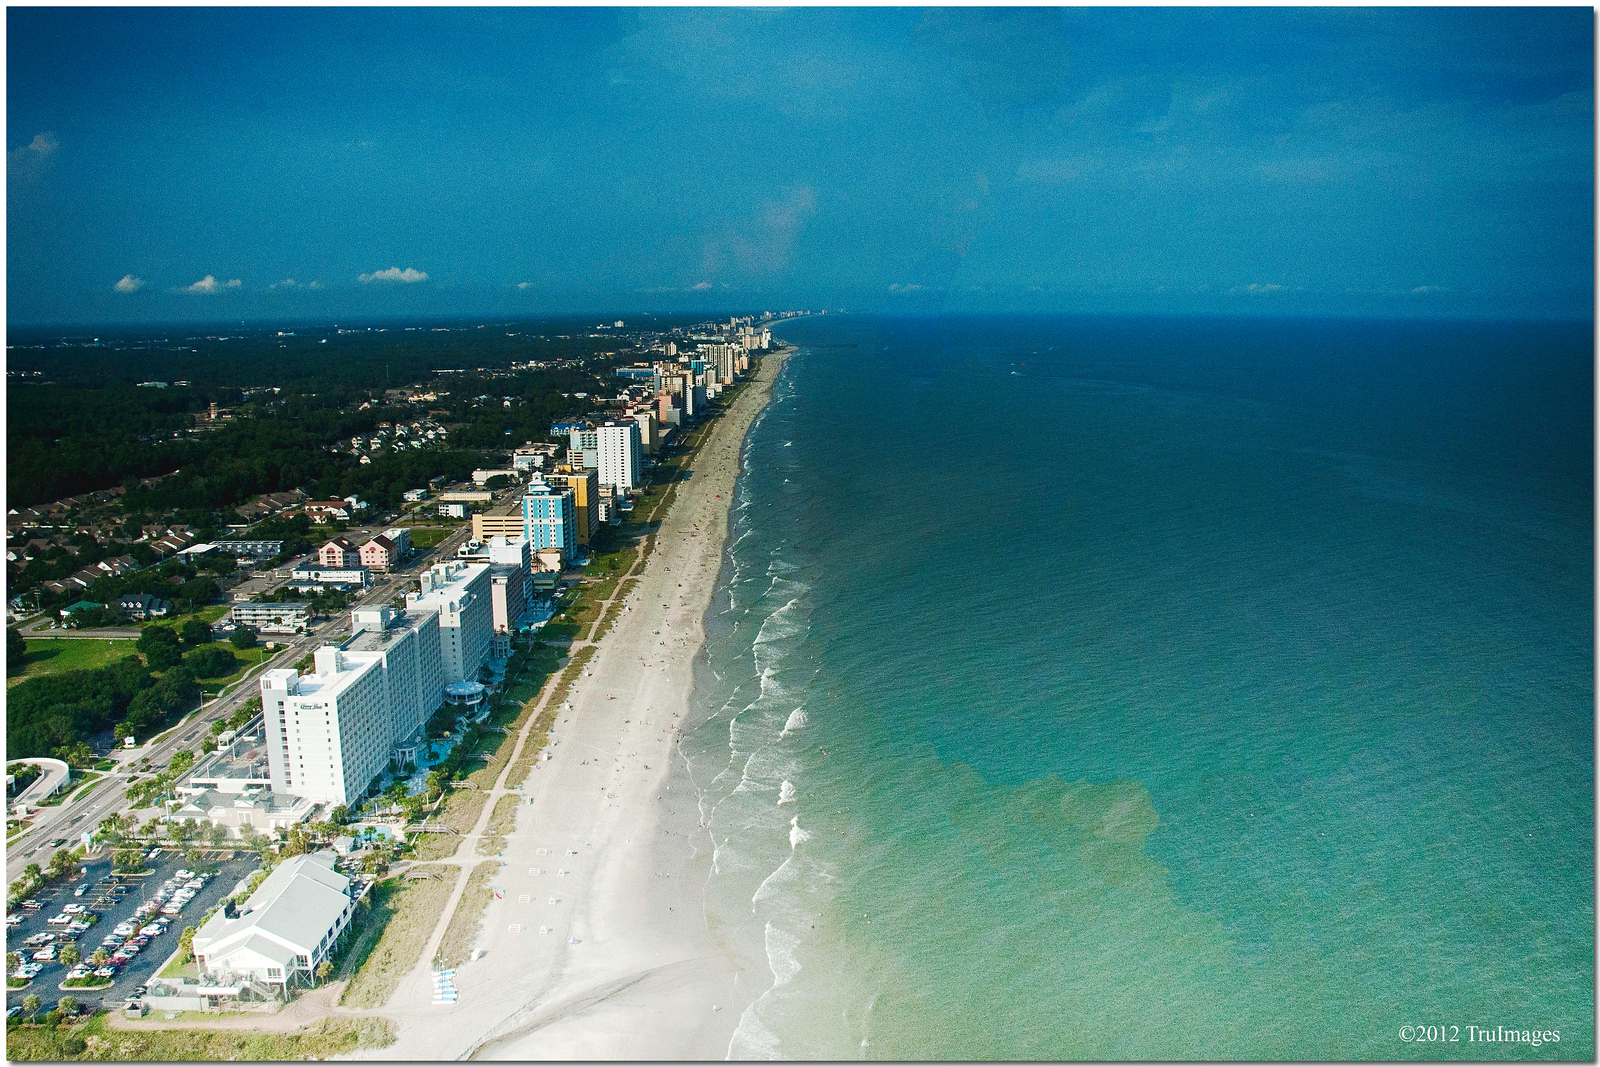 Aug 24 <br /> urban coastline<br /> <br /> Another view from our Myrtle beach helicopter ride. These turned out much better than expected.